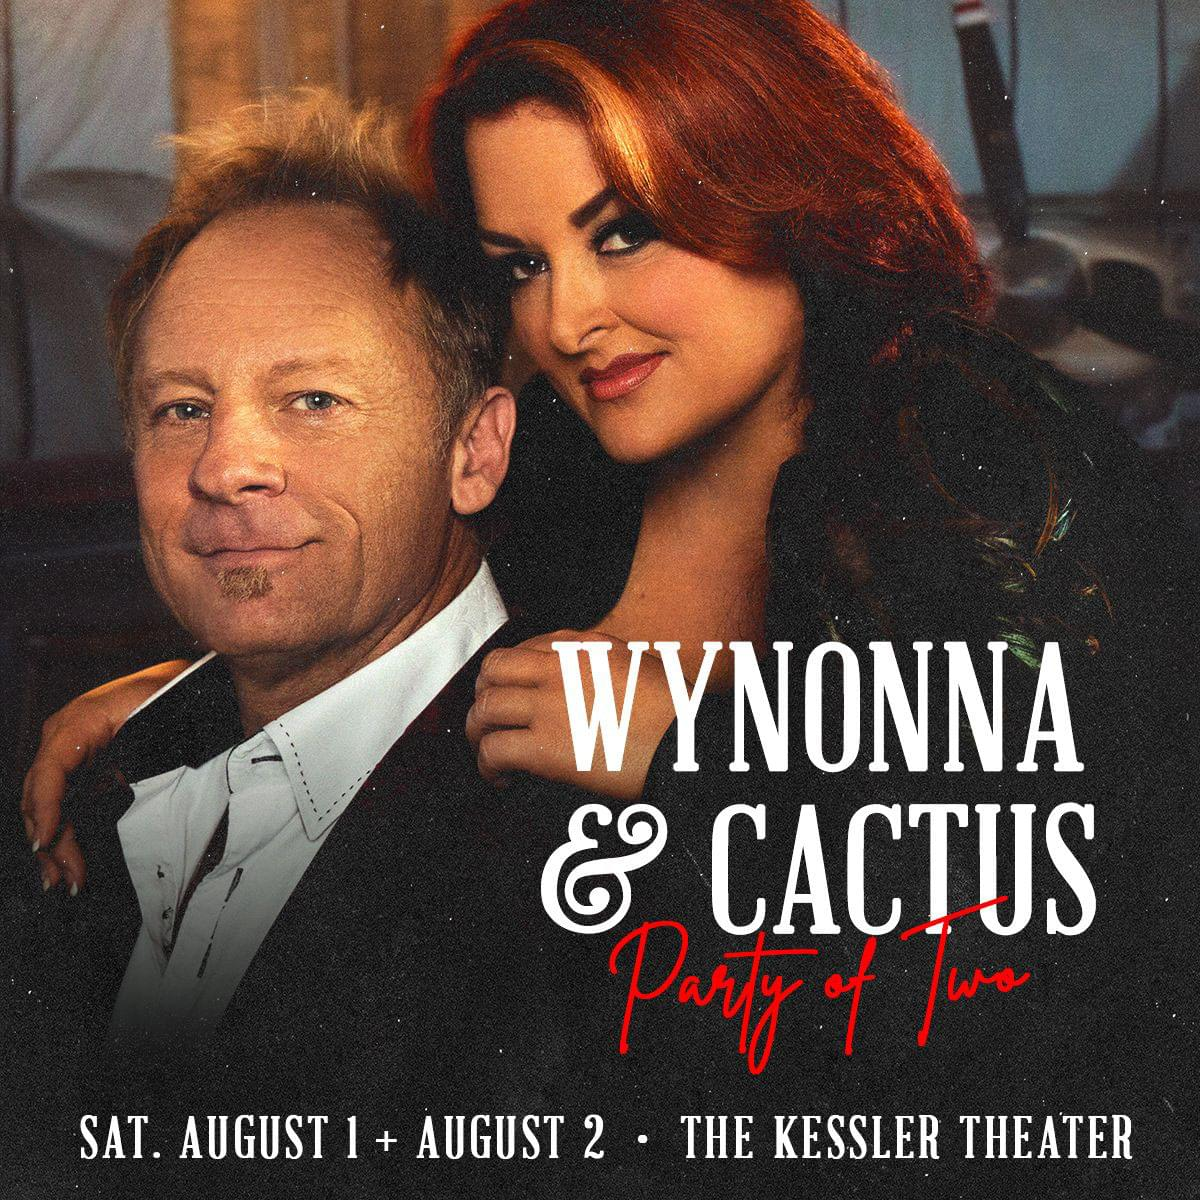 """Win Tickets to see Wynonna & Cactus """"Party of Two"""""""